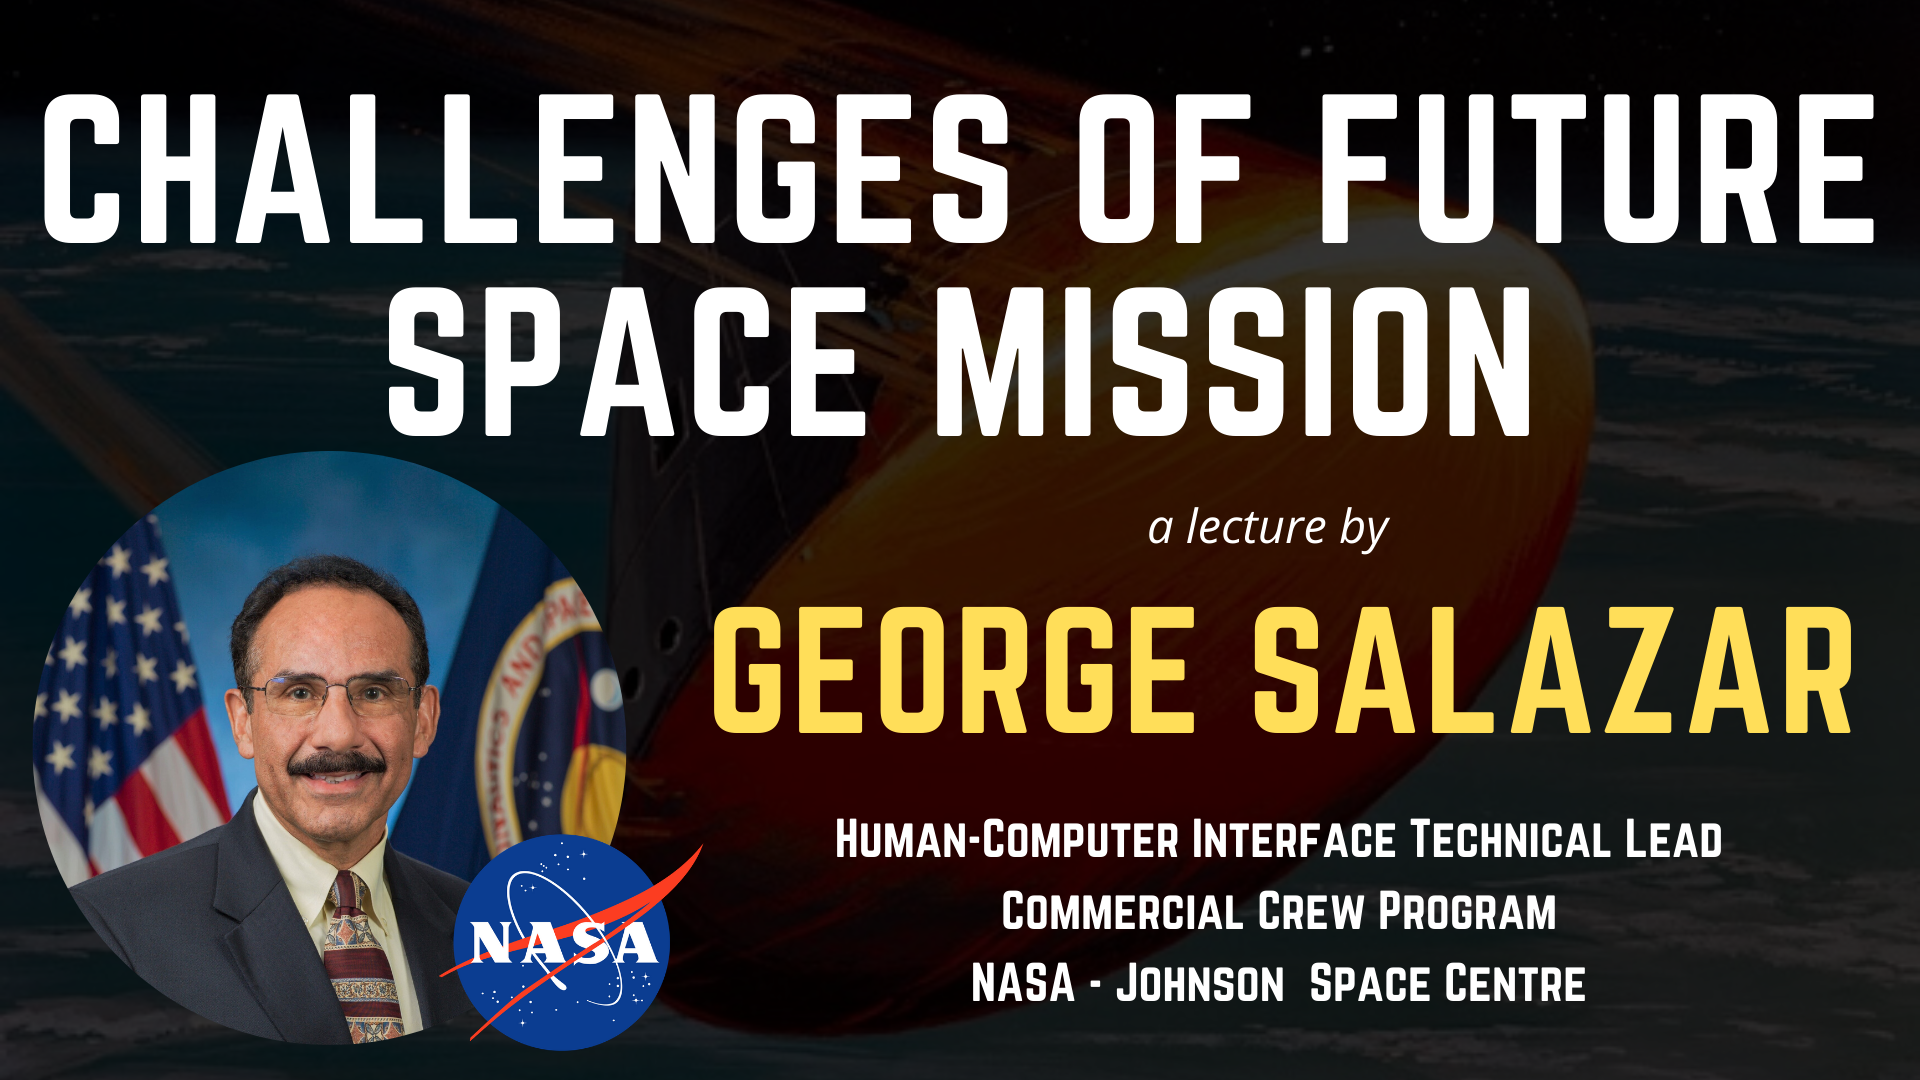 Challenges of Future Space Mission